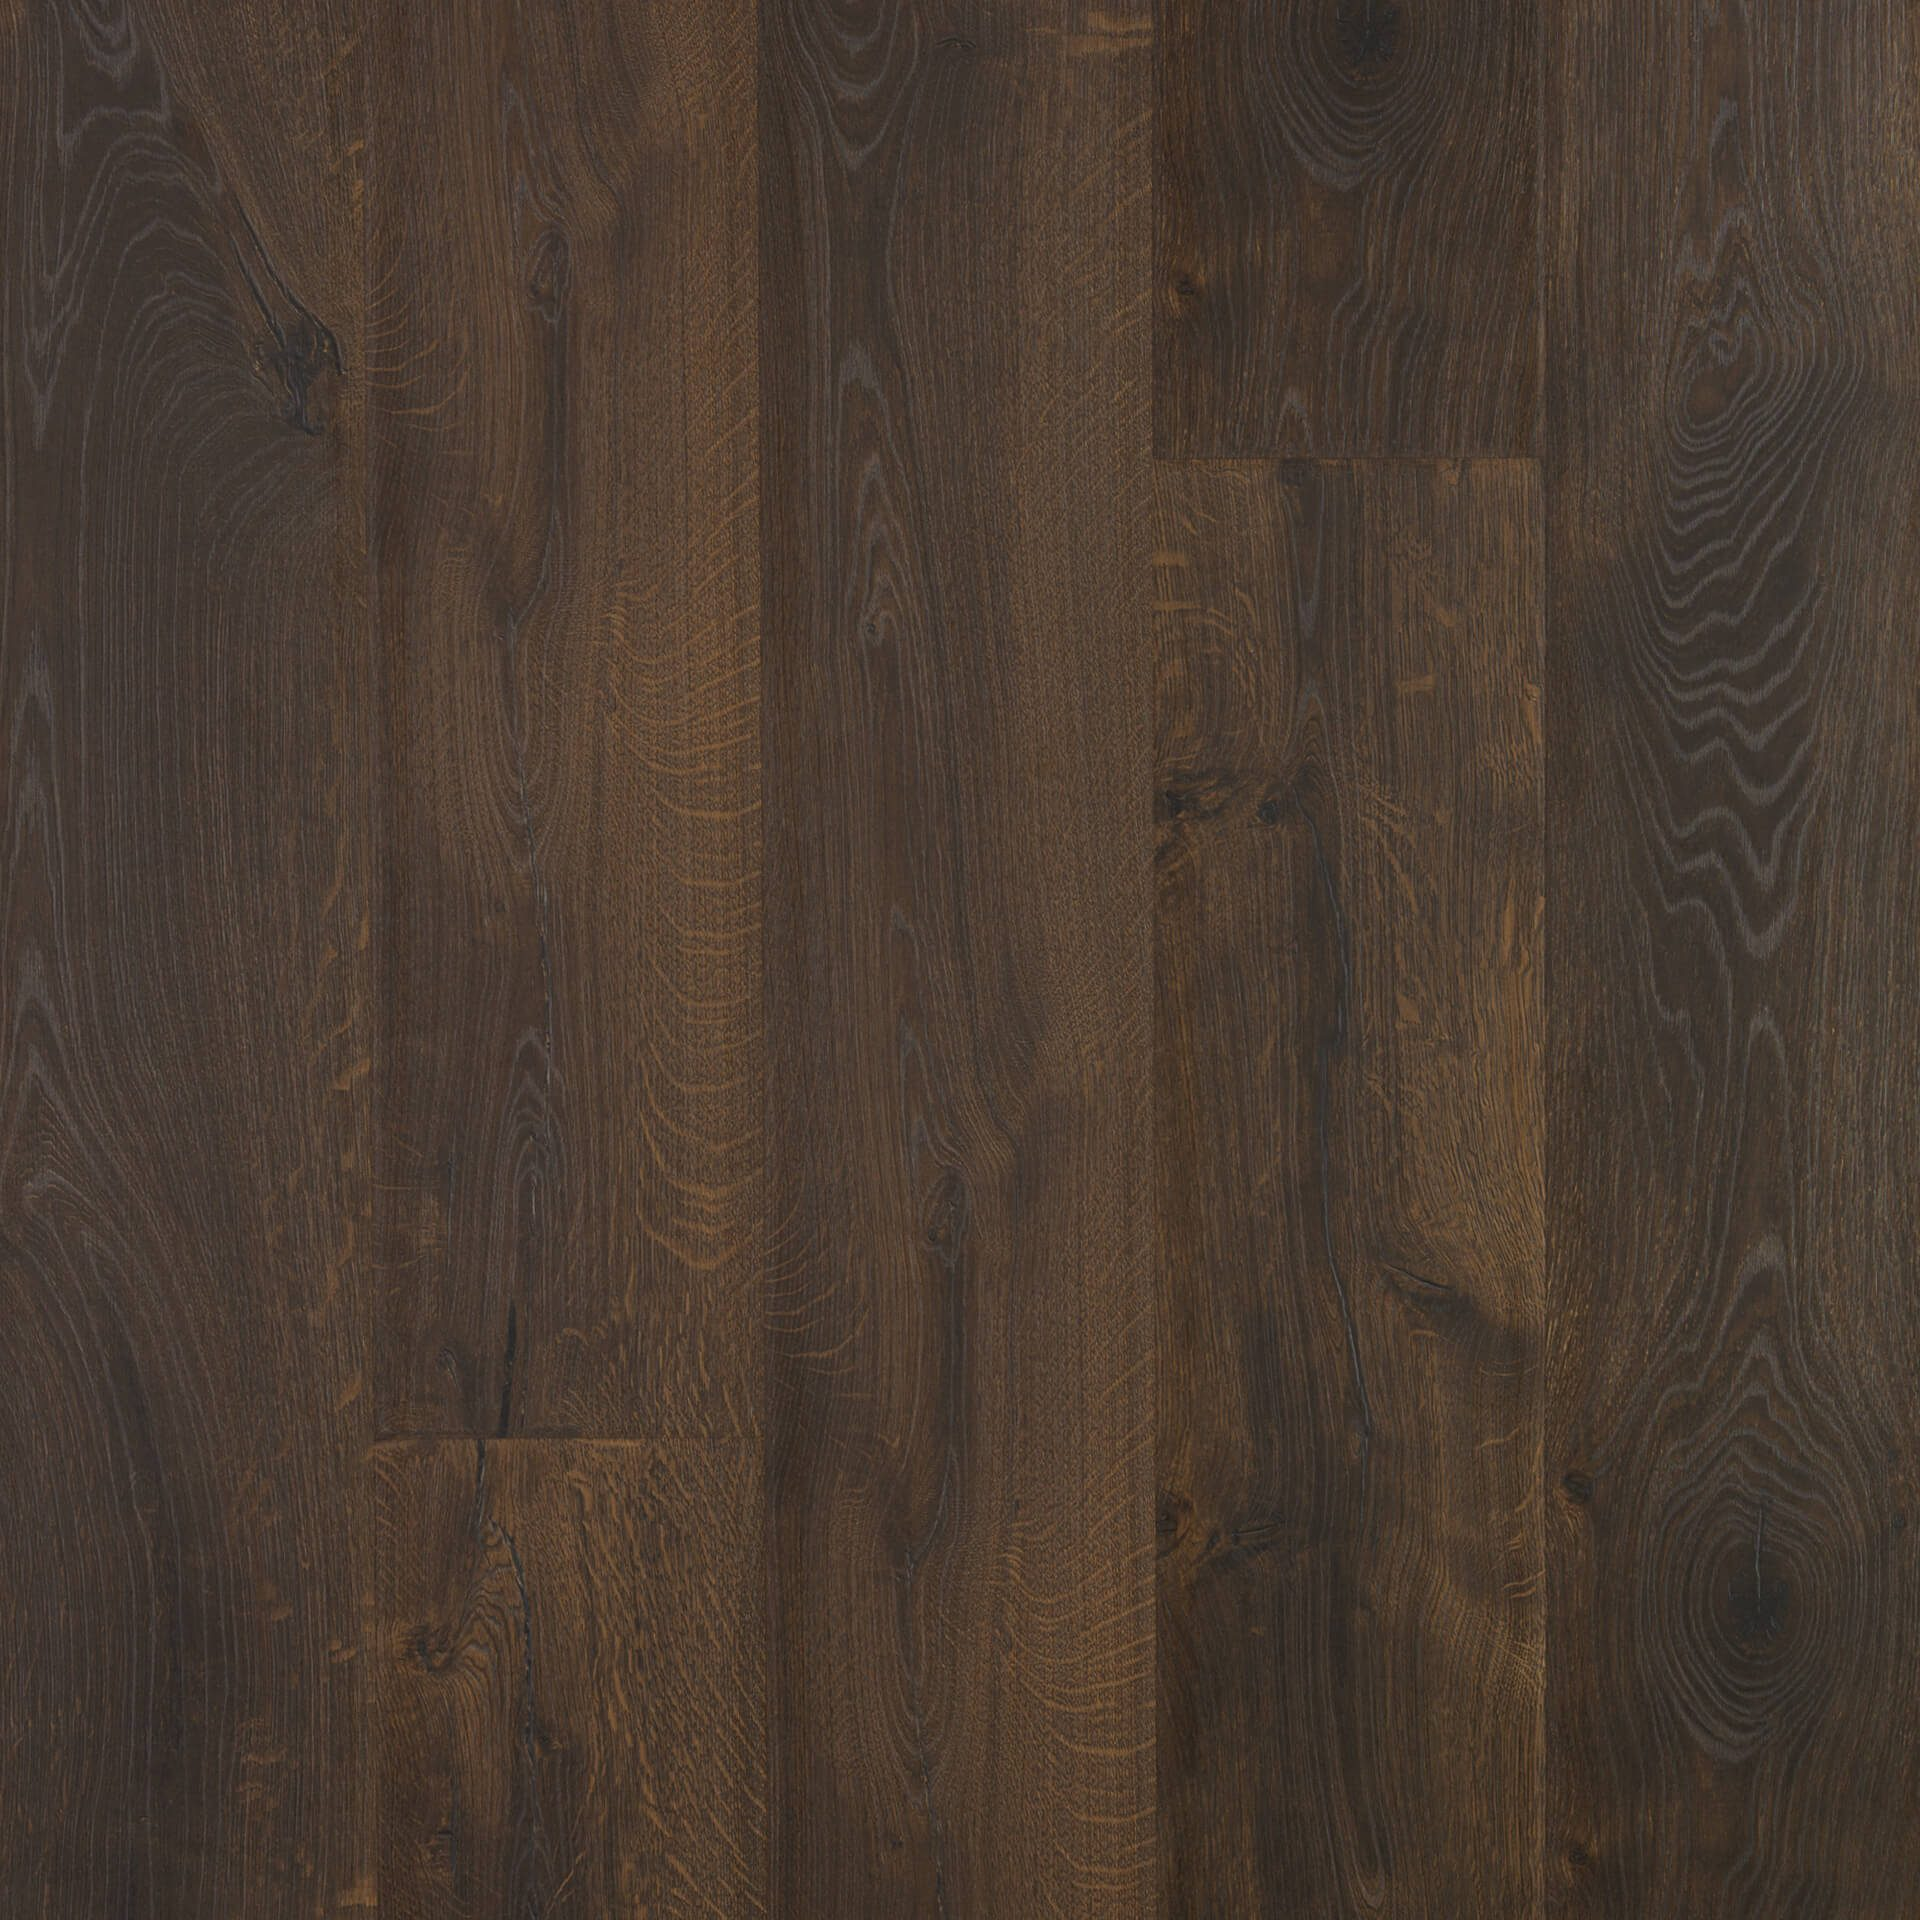 Snyder Oak Styleo Collection Laminate